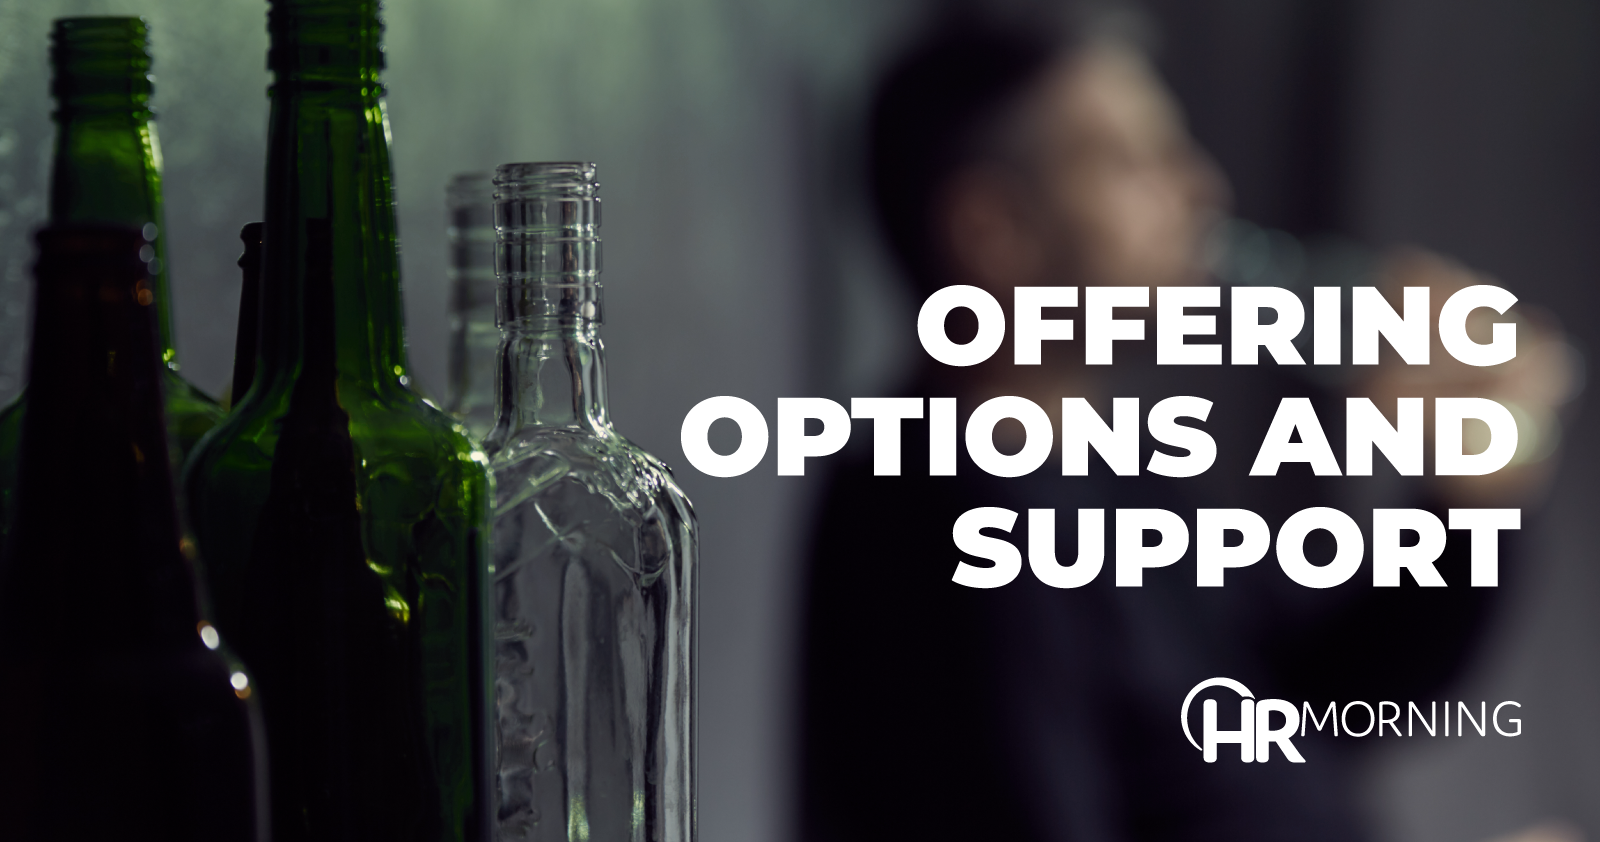 Offering Options And Support